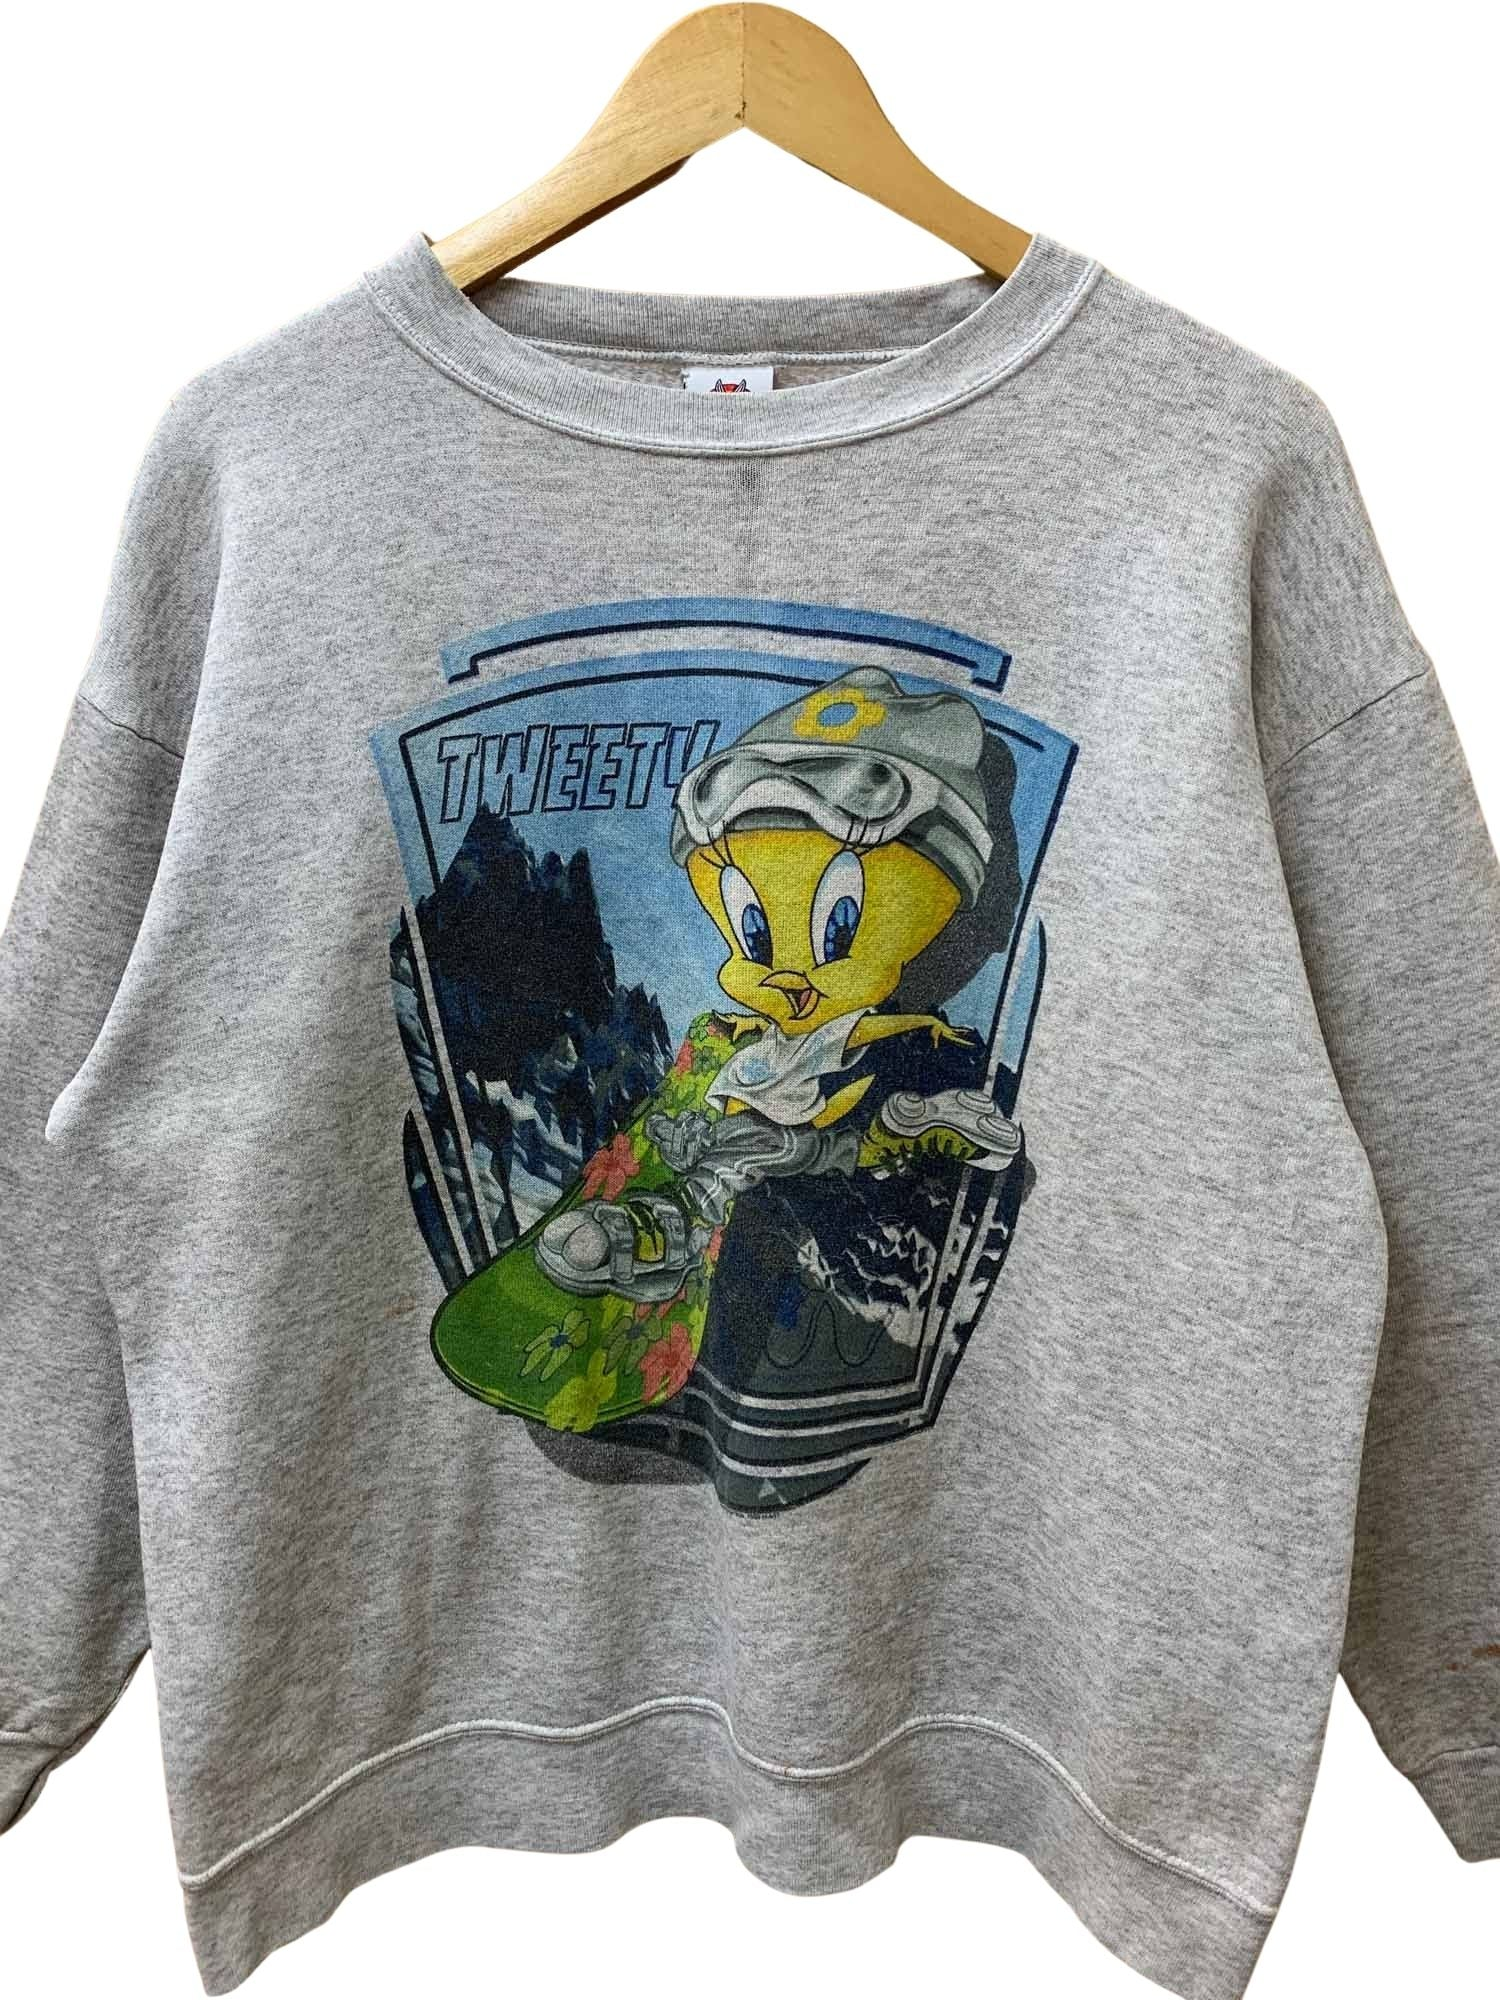 LOONEY TUNES Tweety Crewneck